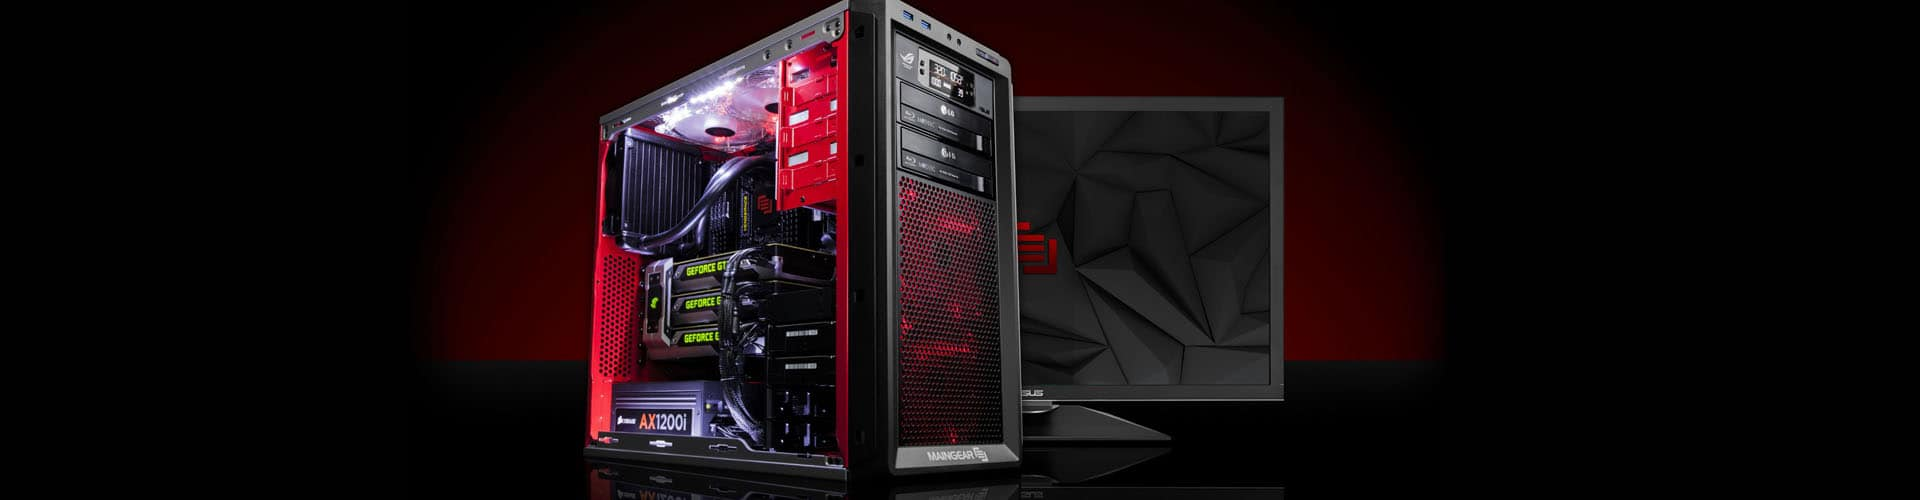 Best Prebuilt Gaming PC Under 800 USD – Buying Guide and Reviews